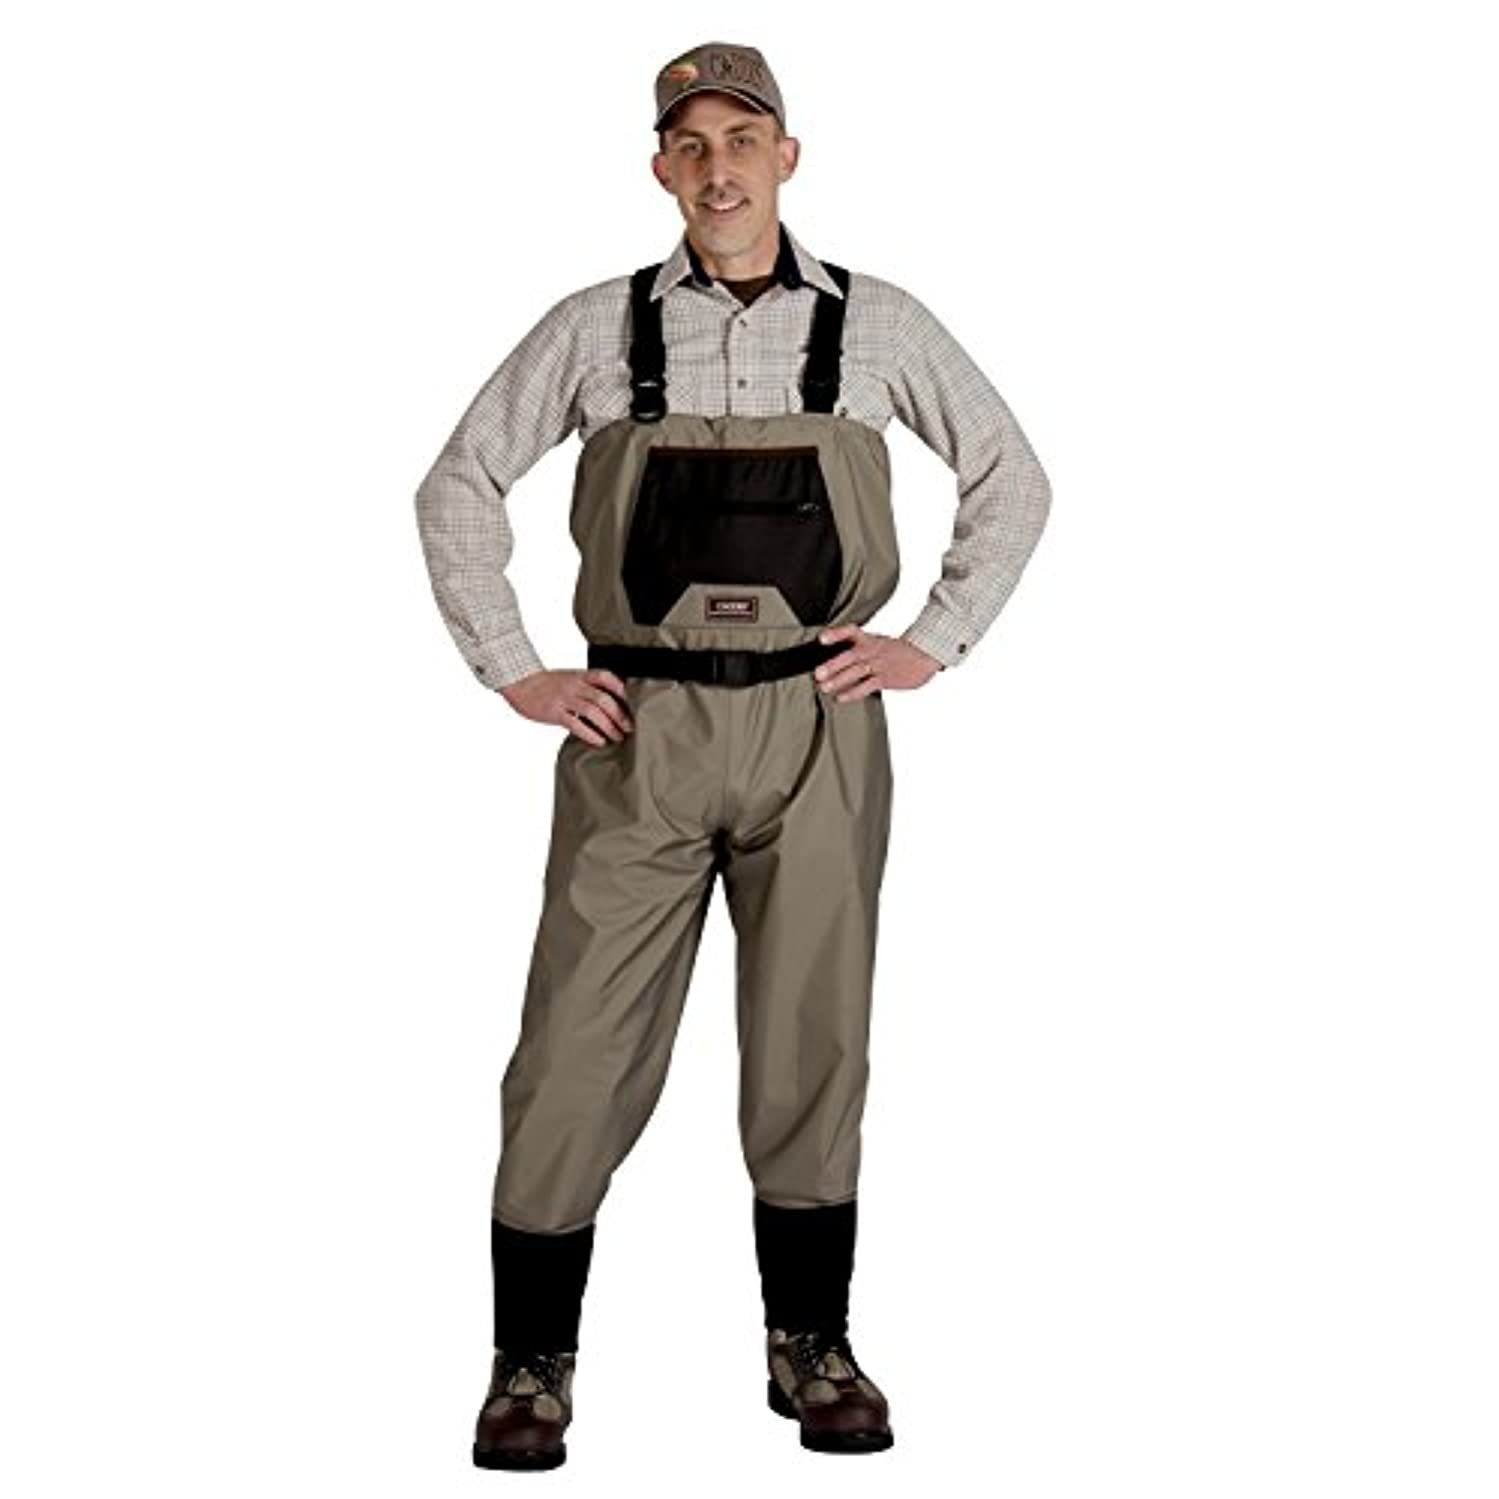 マウント飢えた代表団Caddis Men's Breathable Stockingfoot Waders - L Stout Tan [並行輸入品]